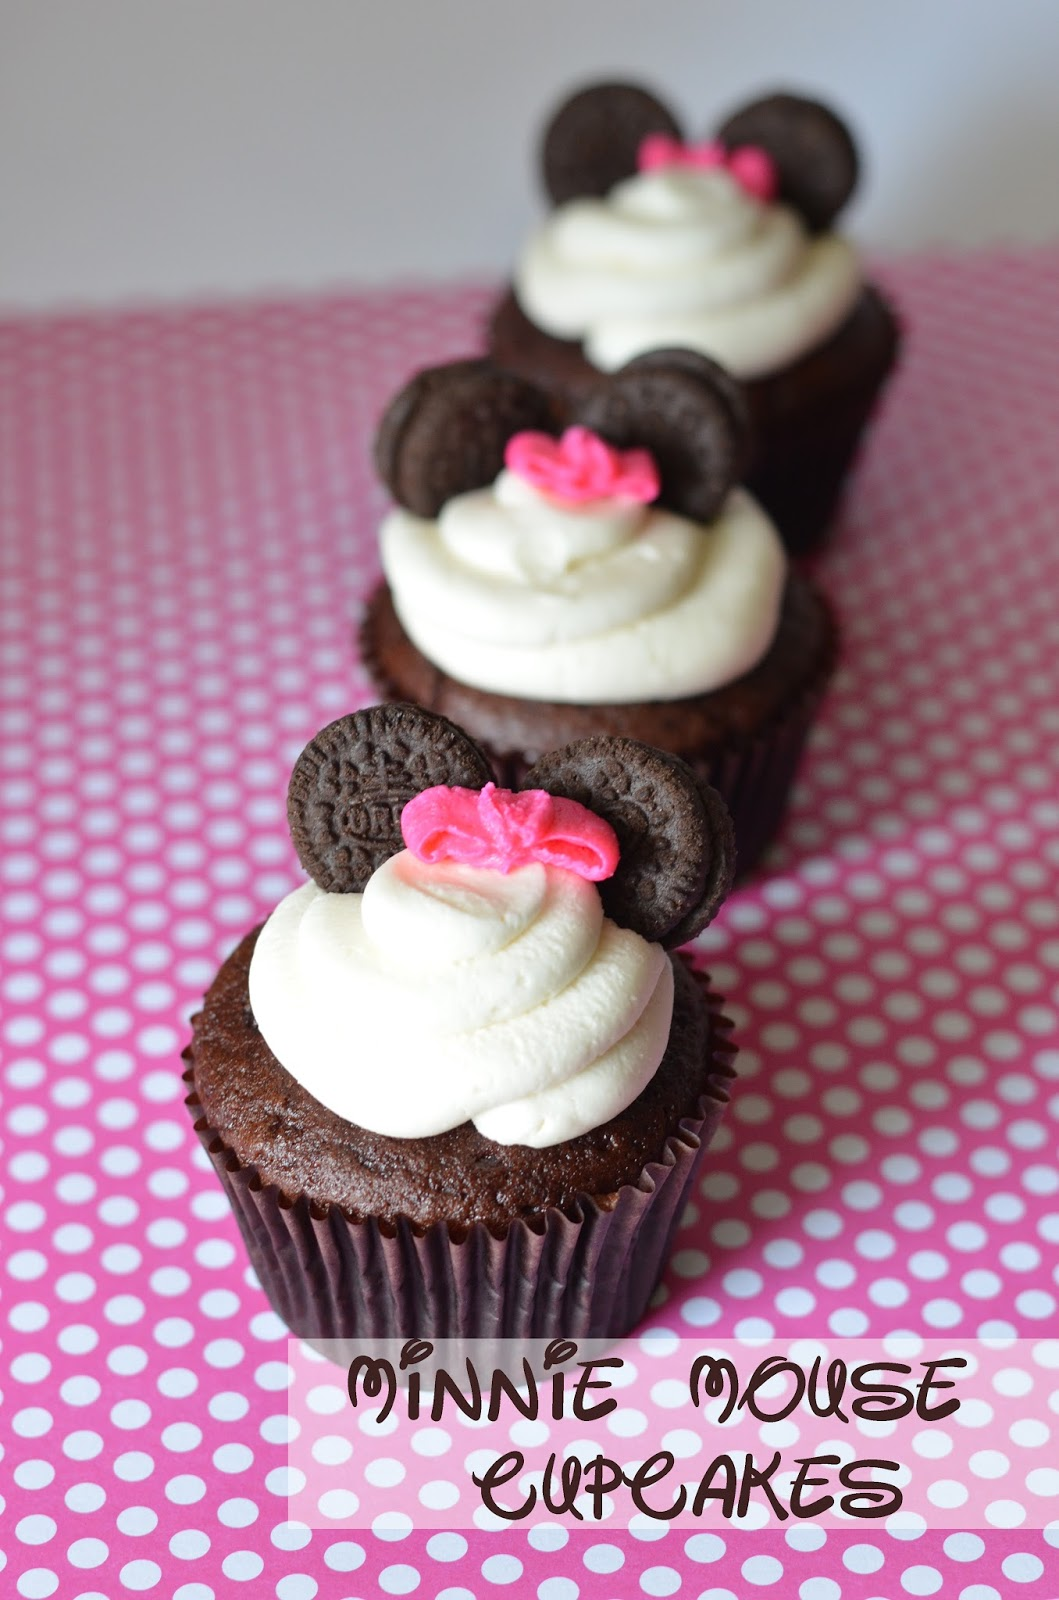 Minnie Mouse Cupcakes - Courtney's Sweets